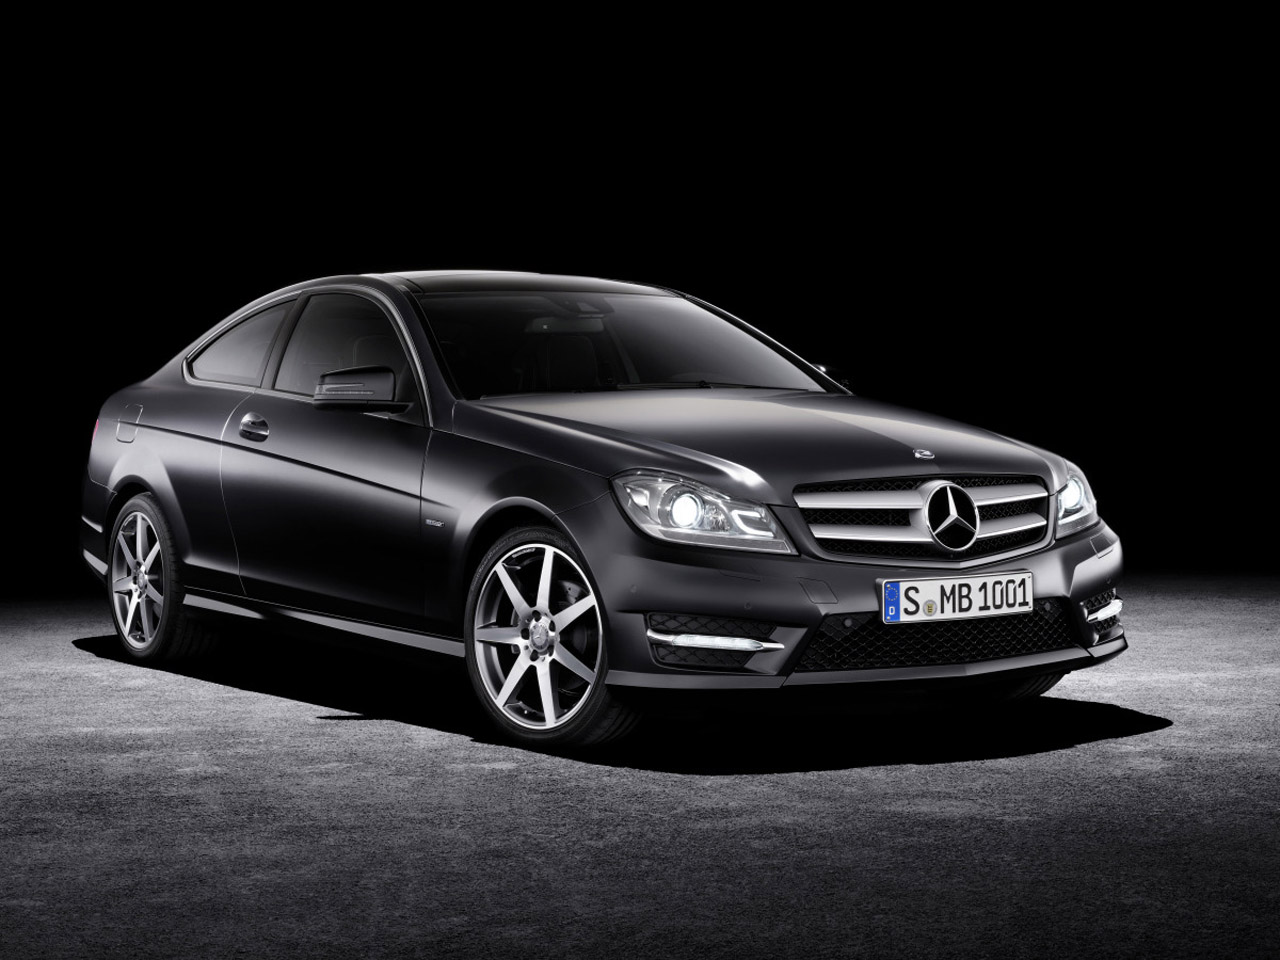 2012 mercedes classe c coup dark cars wallpapers. Black Bedroom Furniture Sets. Home Design Ideas